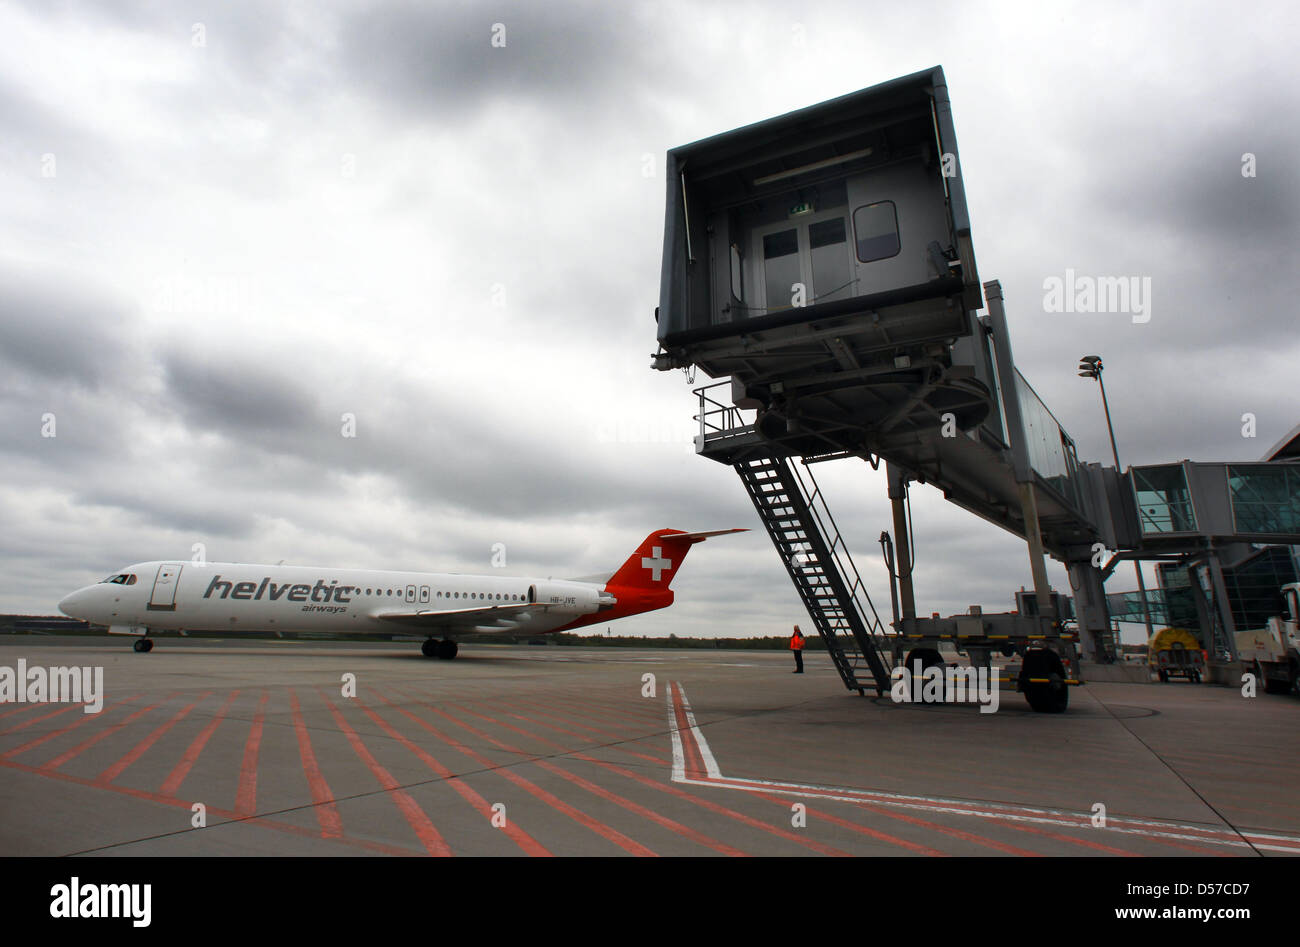 An airplane of the airline Helvetic Airways arrives for the first time at the airport Rostock-Laage in Rostock, - Stock Image